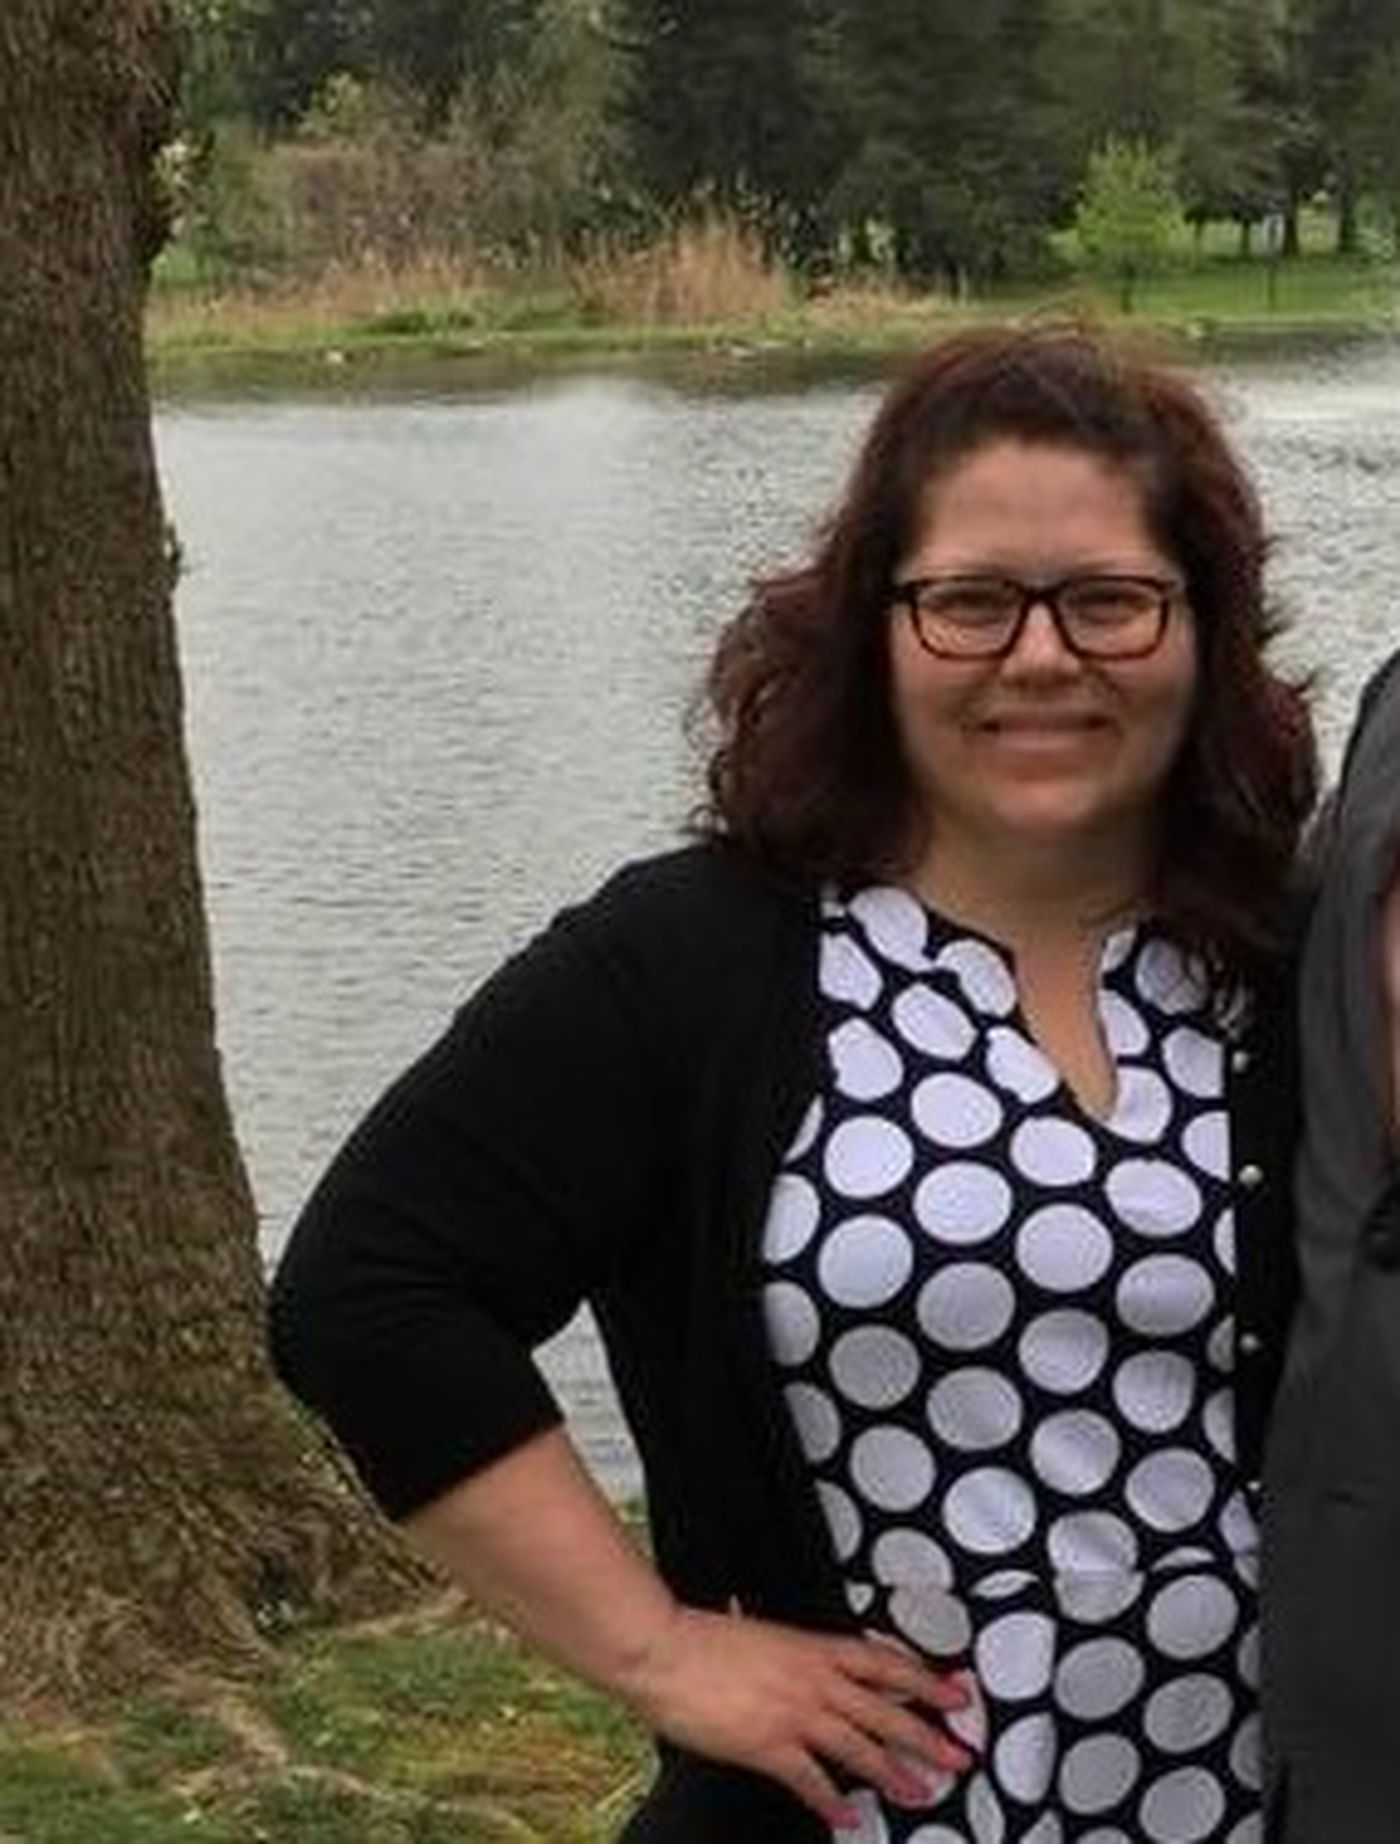 Bucks woman found dead after calling 911 to say boyfriend was going